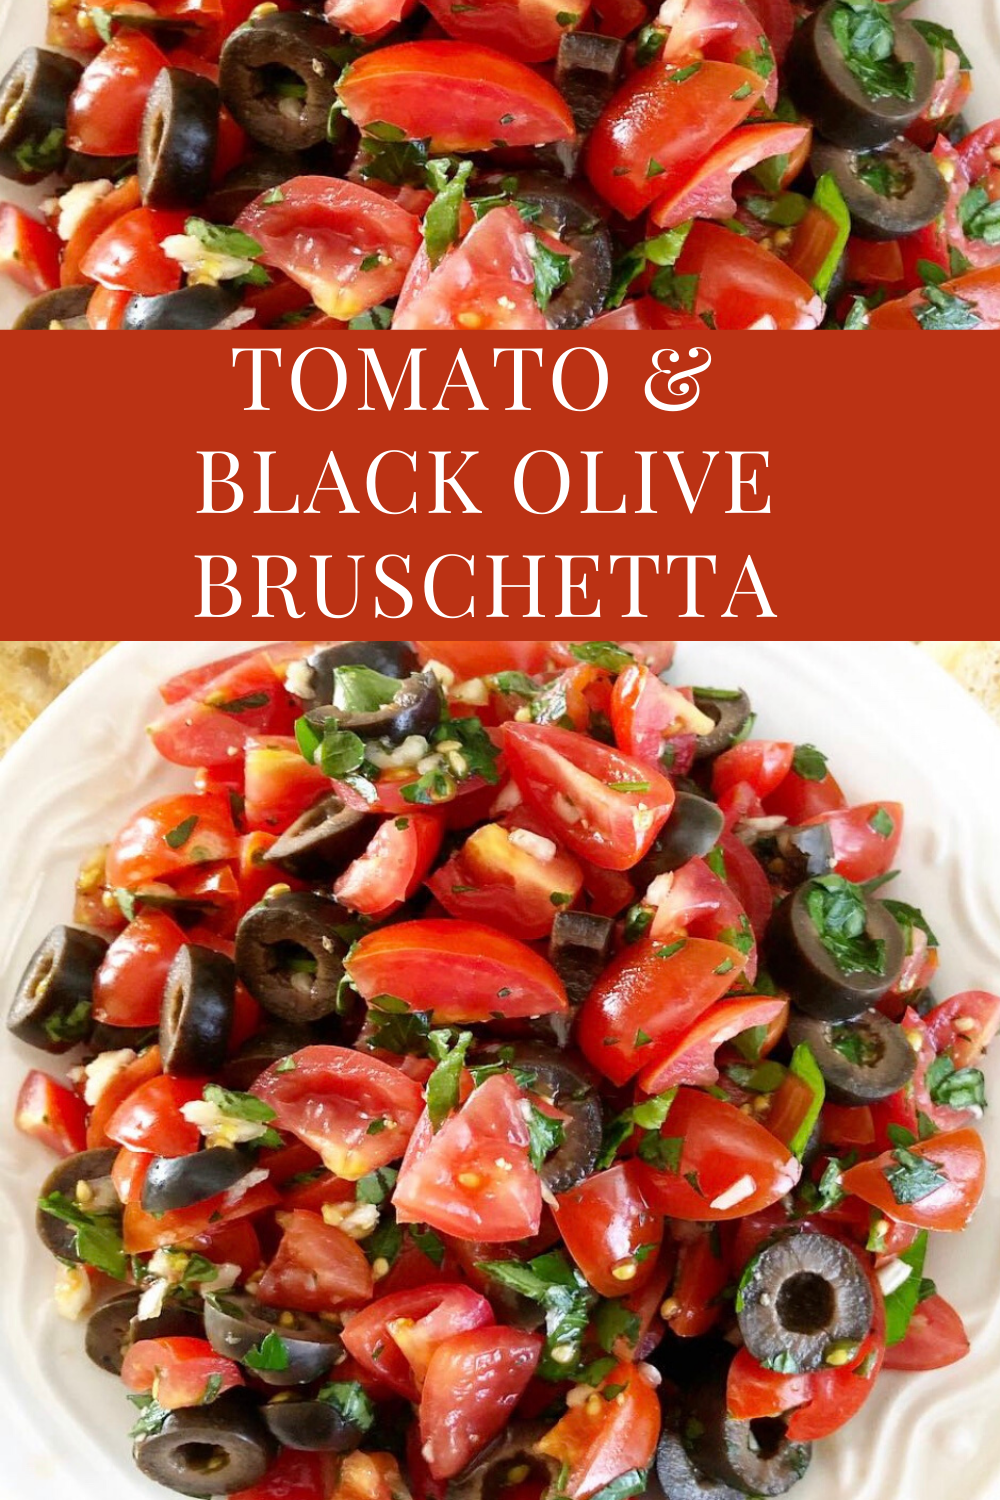 Tomato and Black Olive Bruschetta - Simple and elegant. Perfect for a casual picnic lunch for two or when entertaining guests at home. via @thiswifecooks